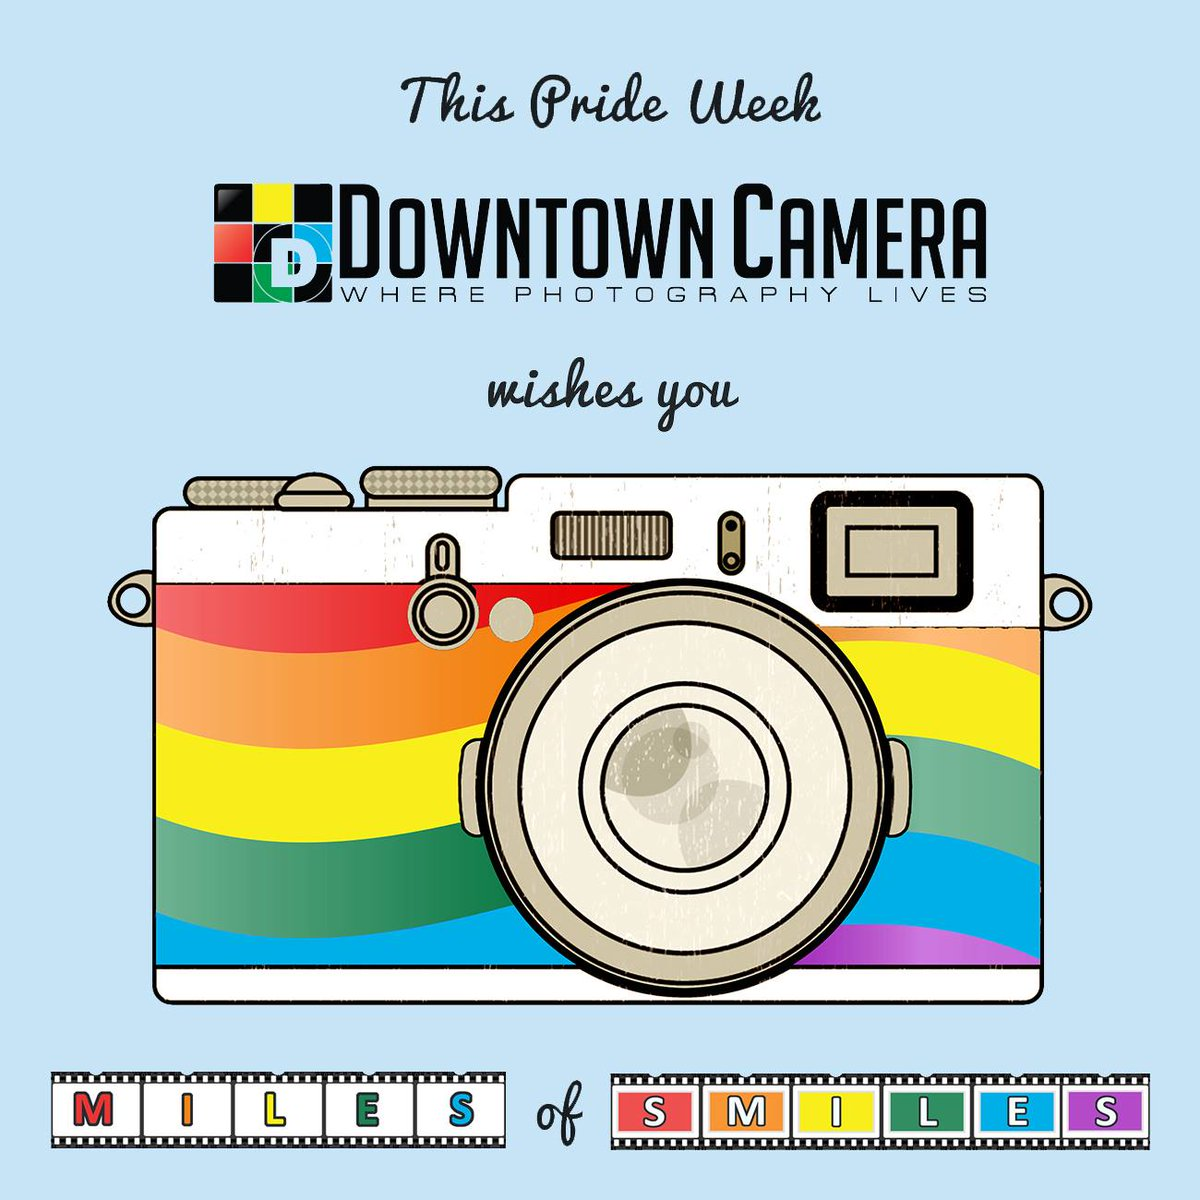 Downtown Camera on Twitter: